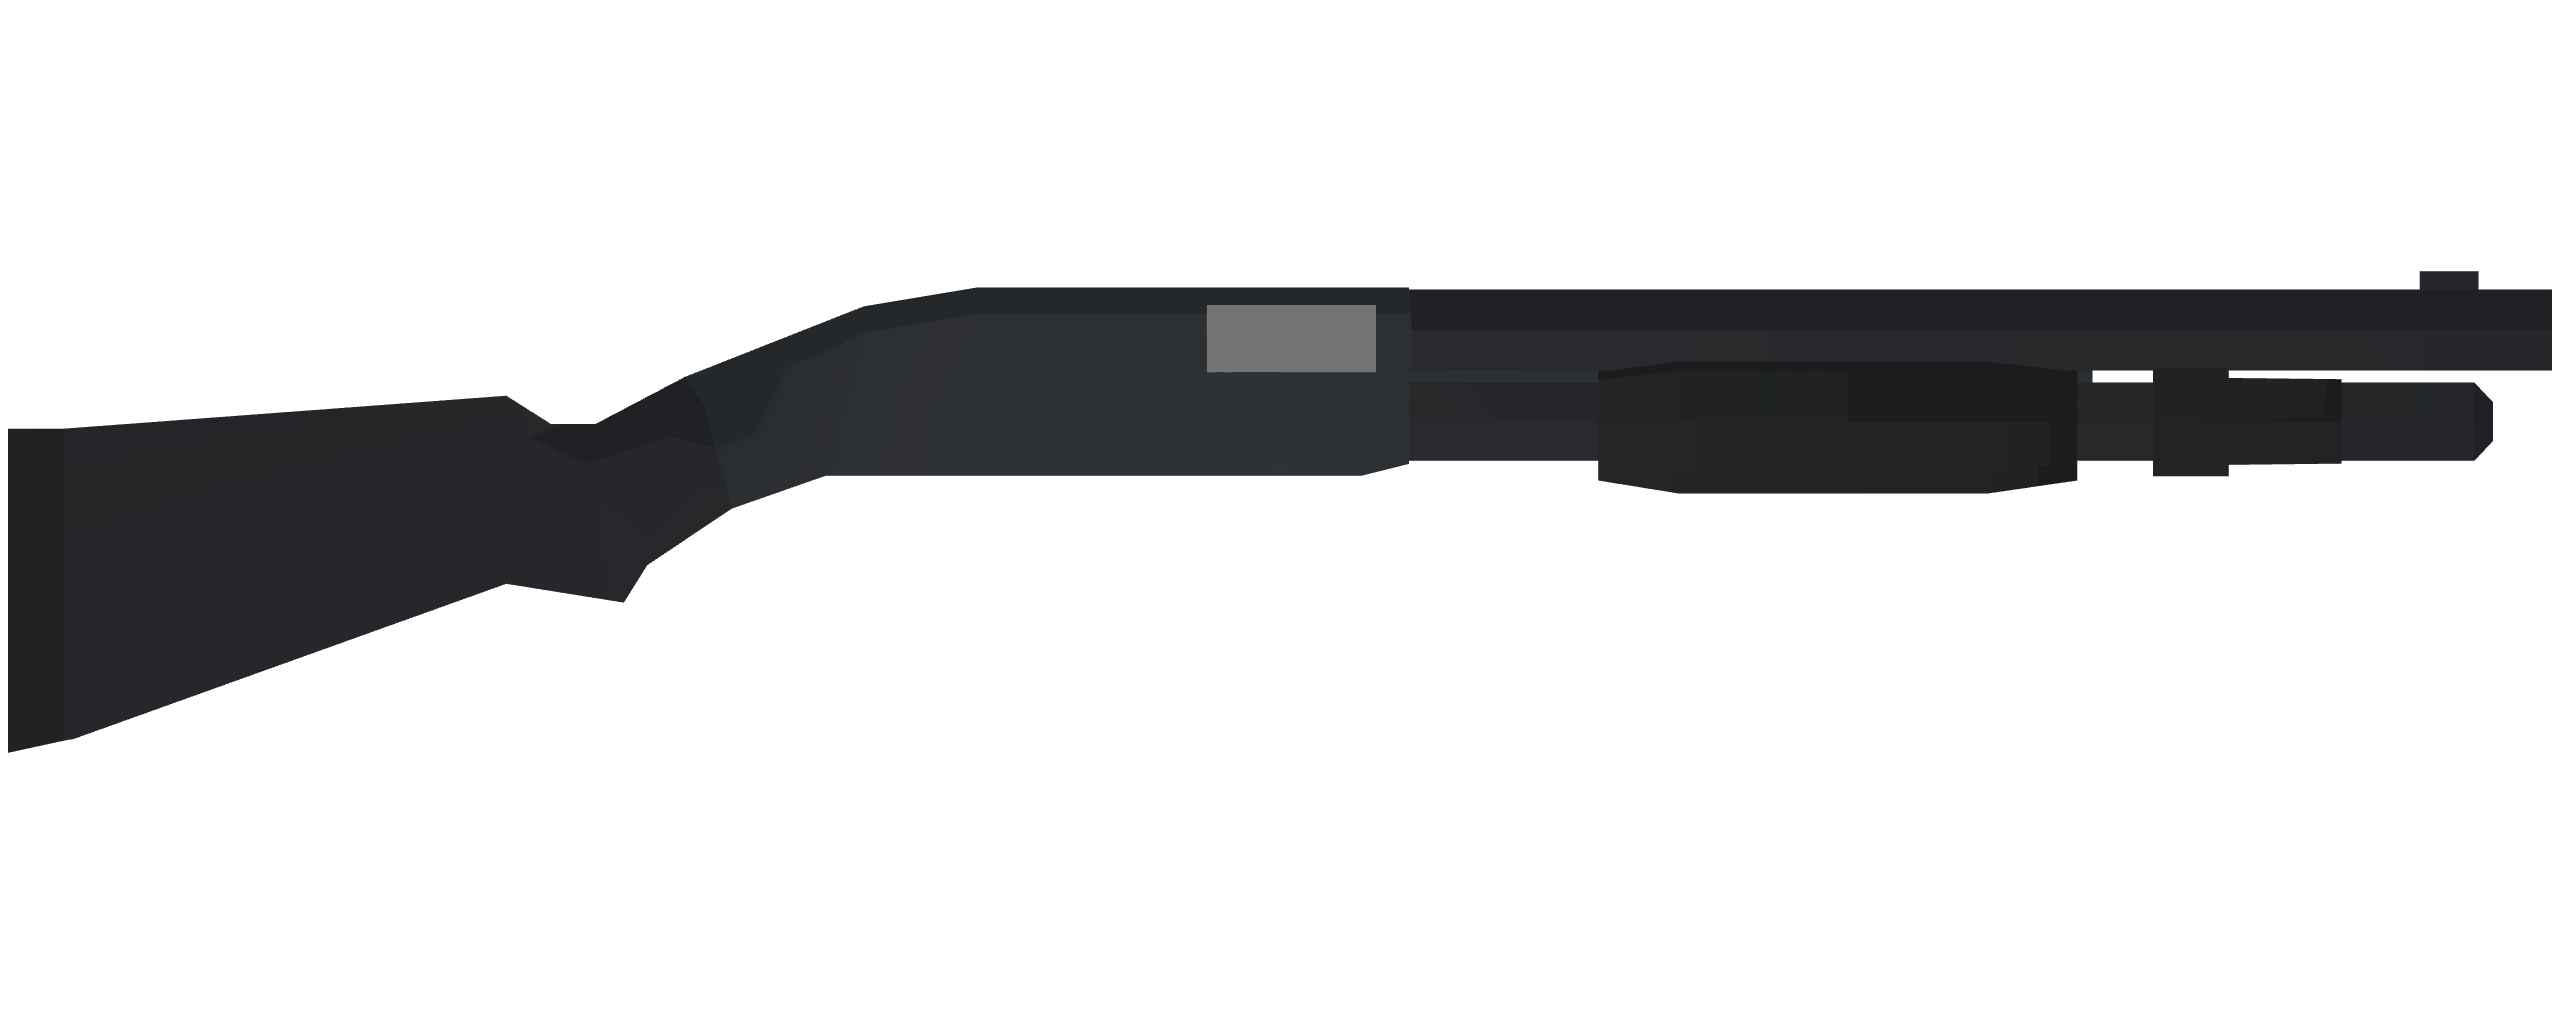 Unturned Uncreated Warfare Mods & All ID List + Attachments - USA Weapons - 6CF73CD